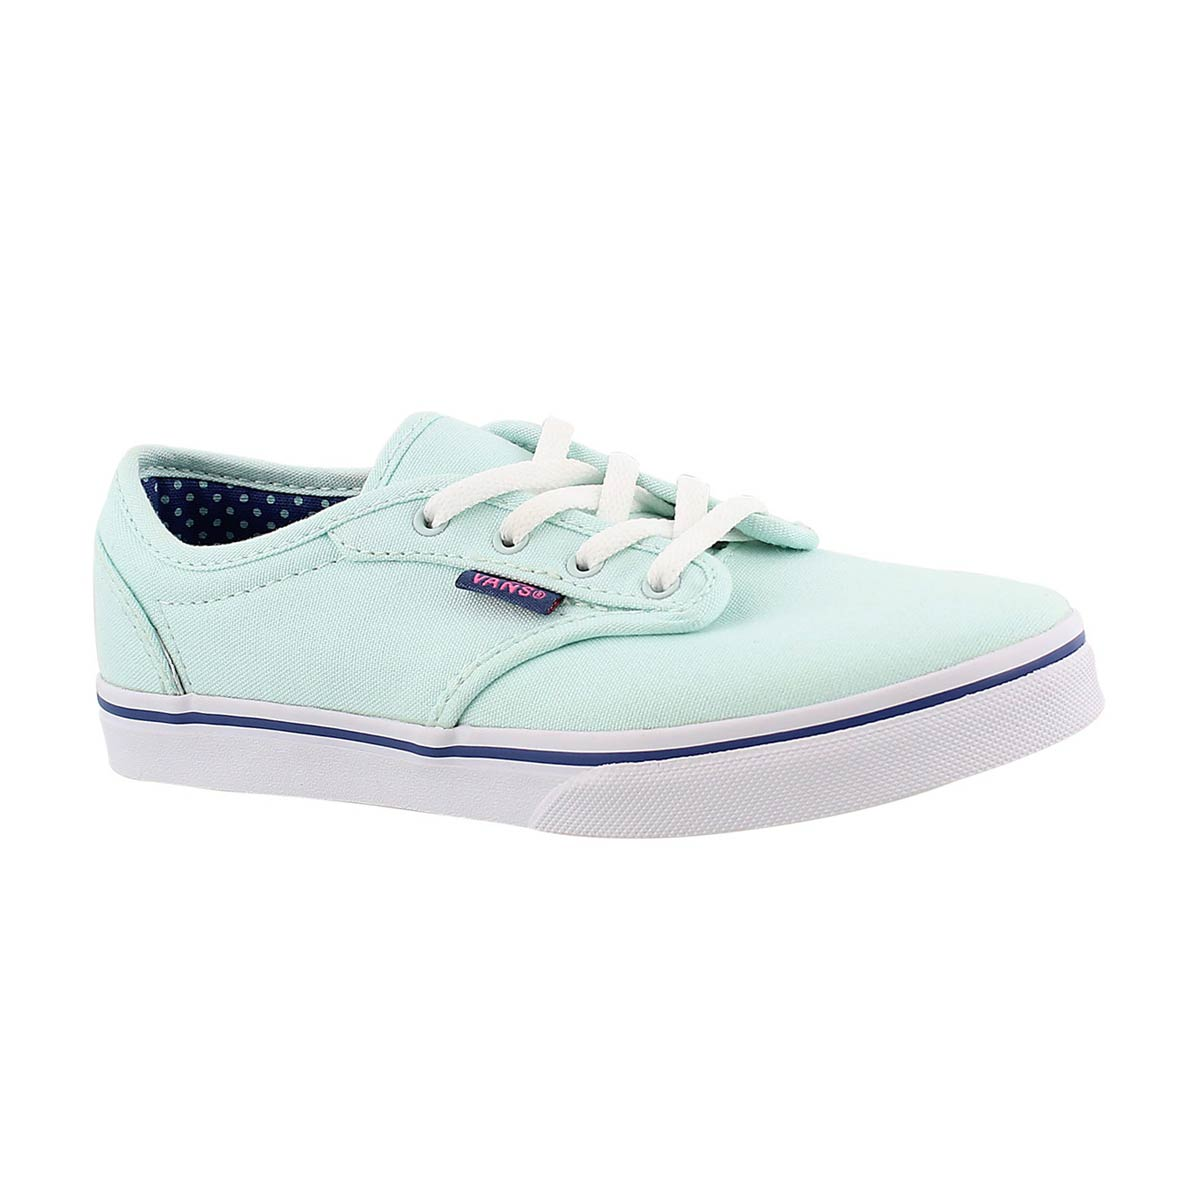 Espad. lacée Atwood Low, vert mar, fille